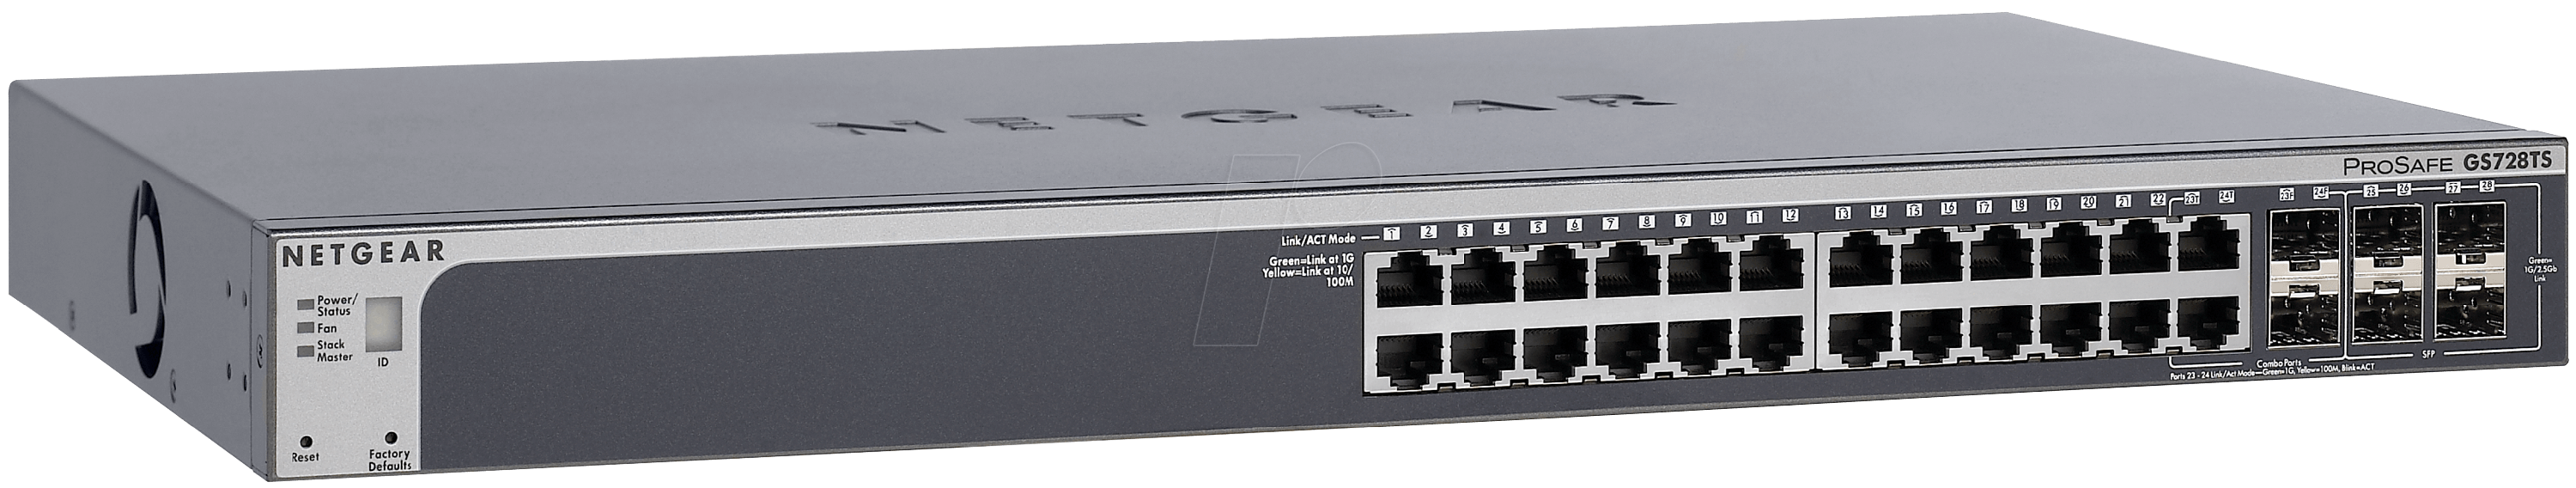 GS752TSB - Switch, 52-Port, Gigabit Ethernet, PoE